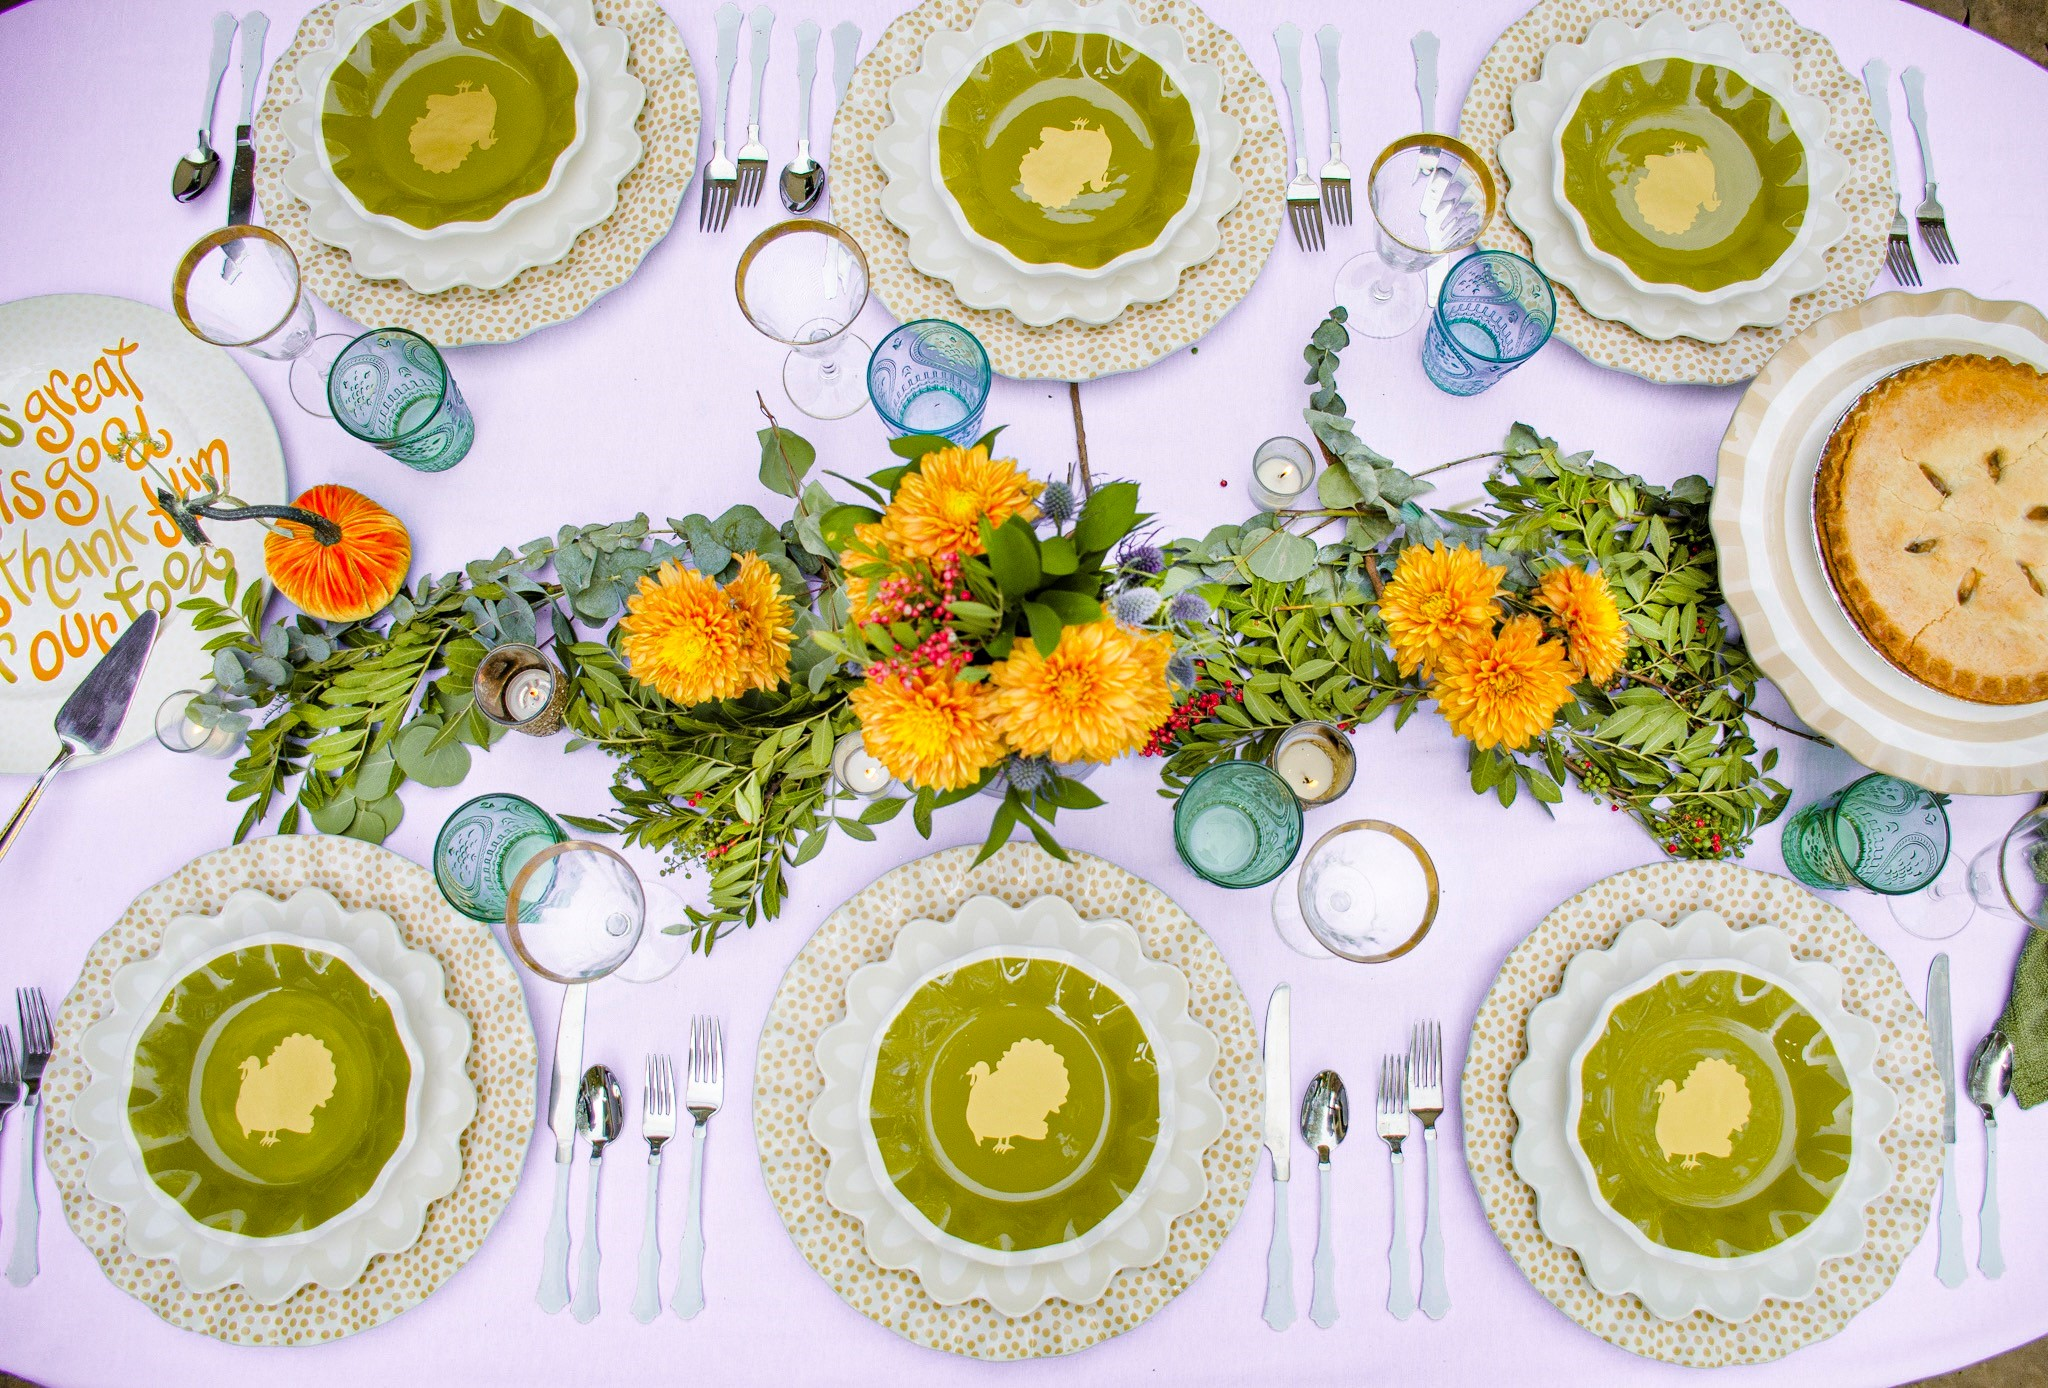 Thanksgiving Table Styling with Coton Colors